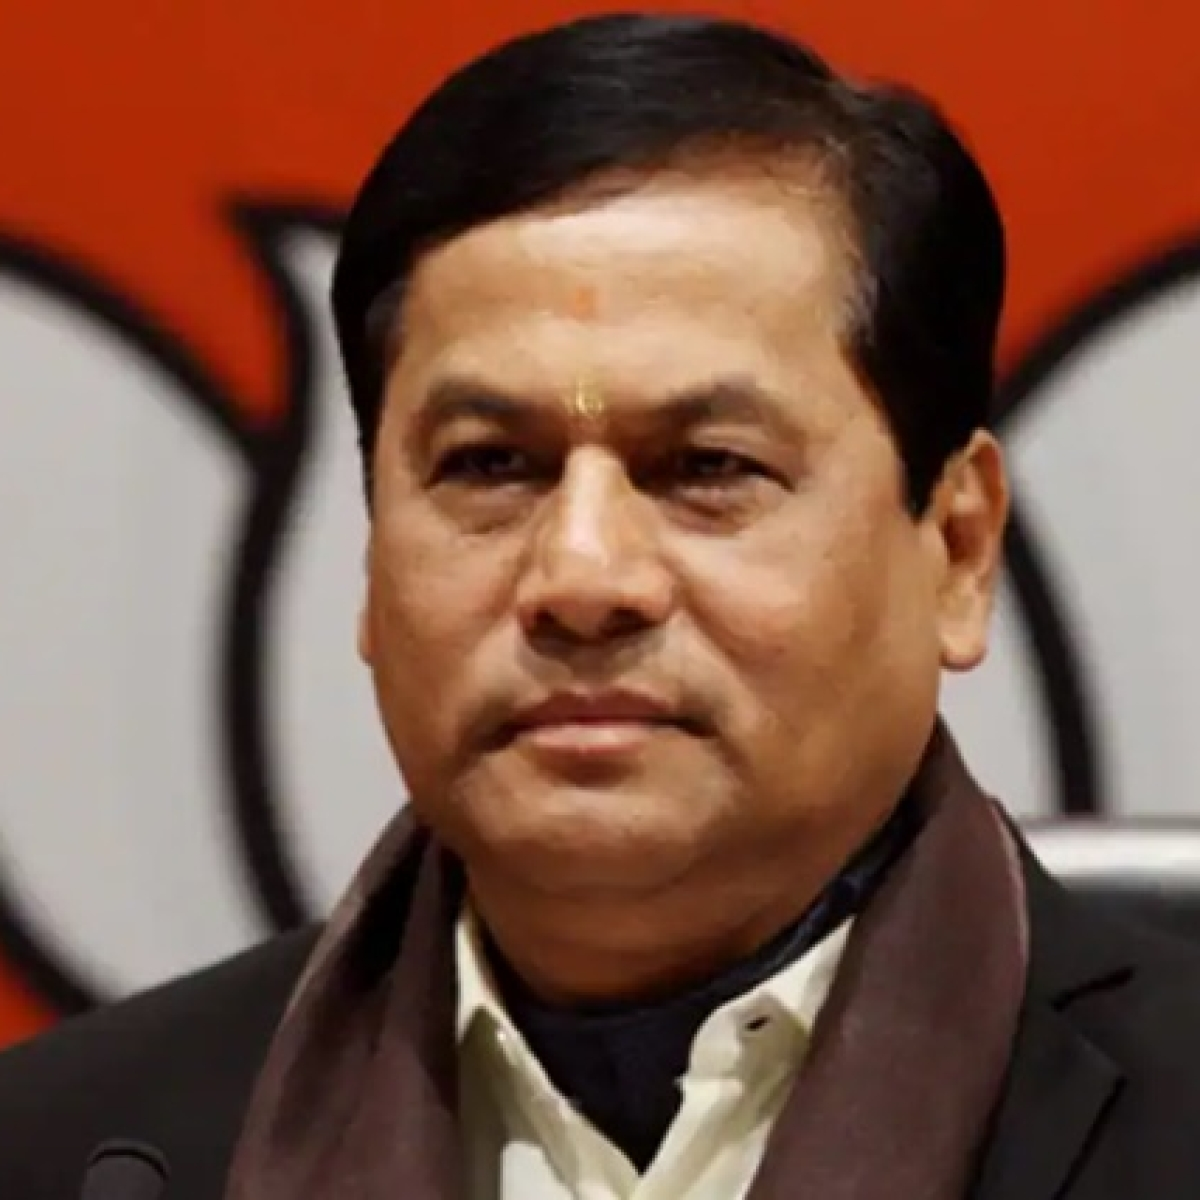 BJP will form govt in Assam, says CM Sarbananda Sonowal ahead of poll results